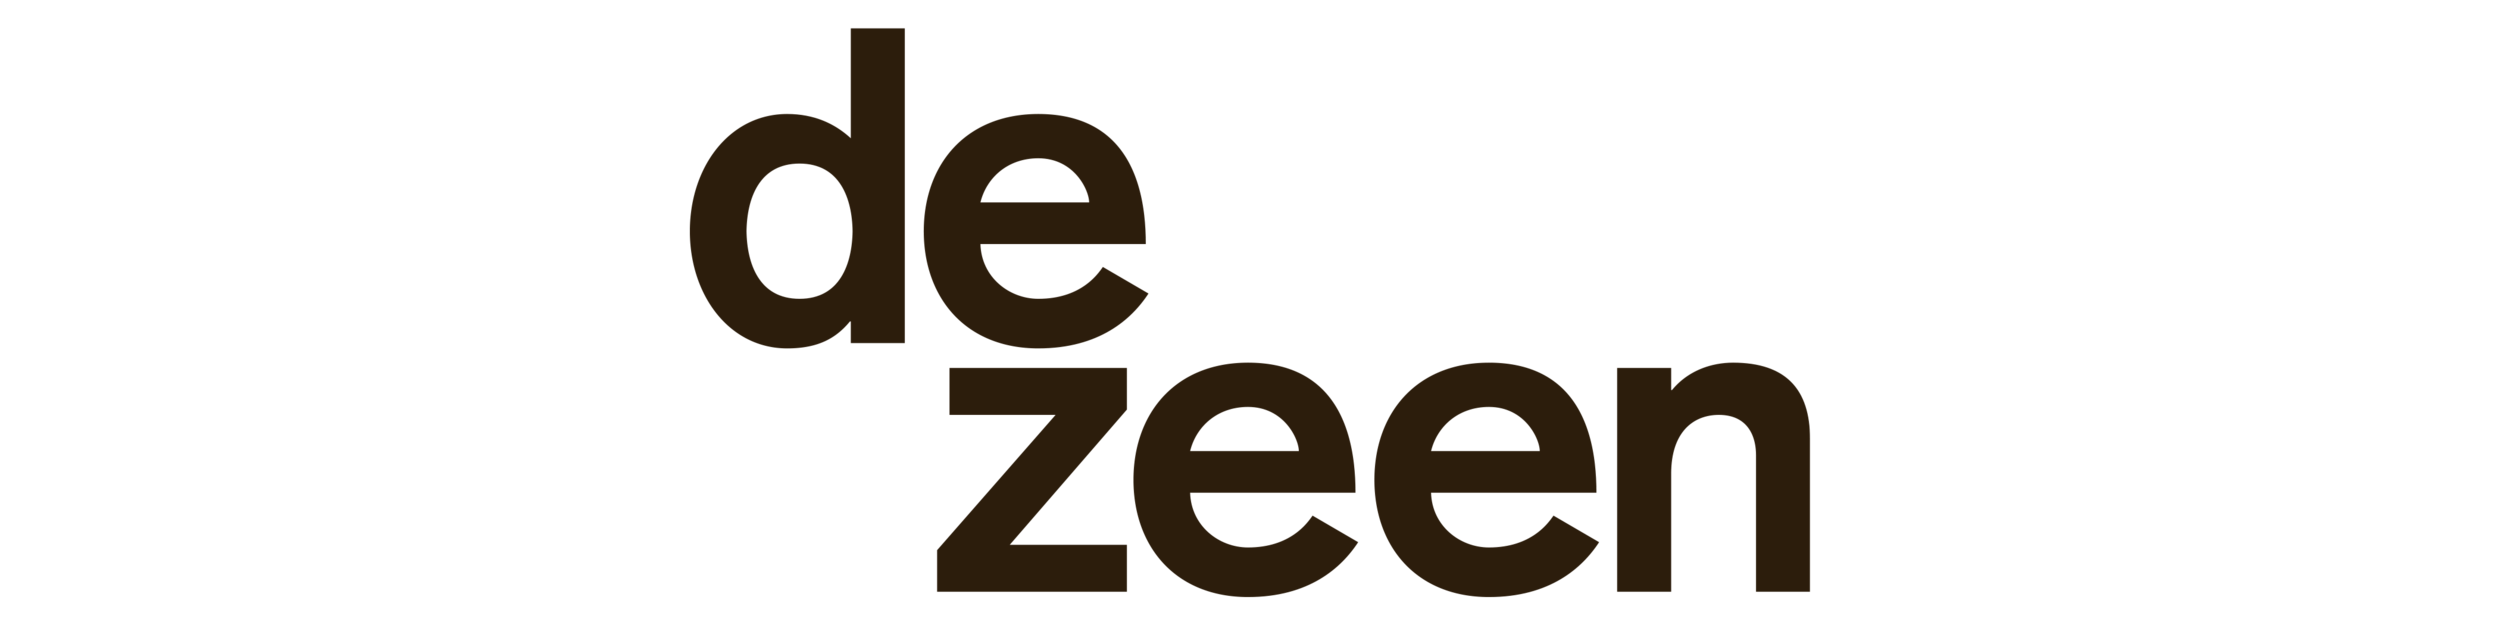 Dezeen is the world's most popular and influential architecture and design magazine.